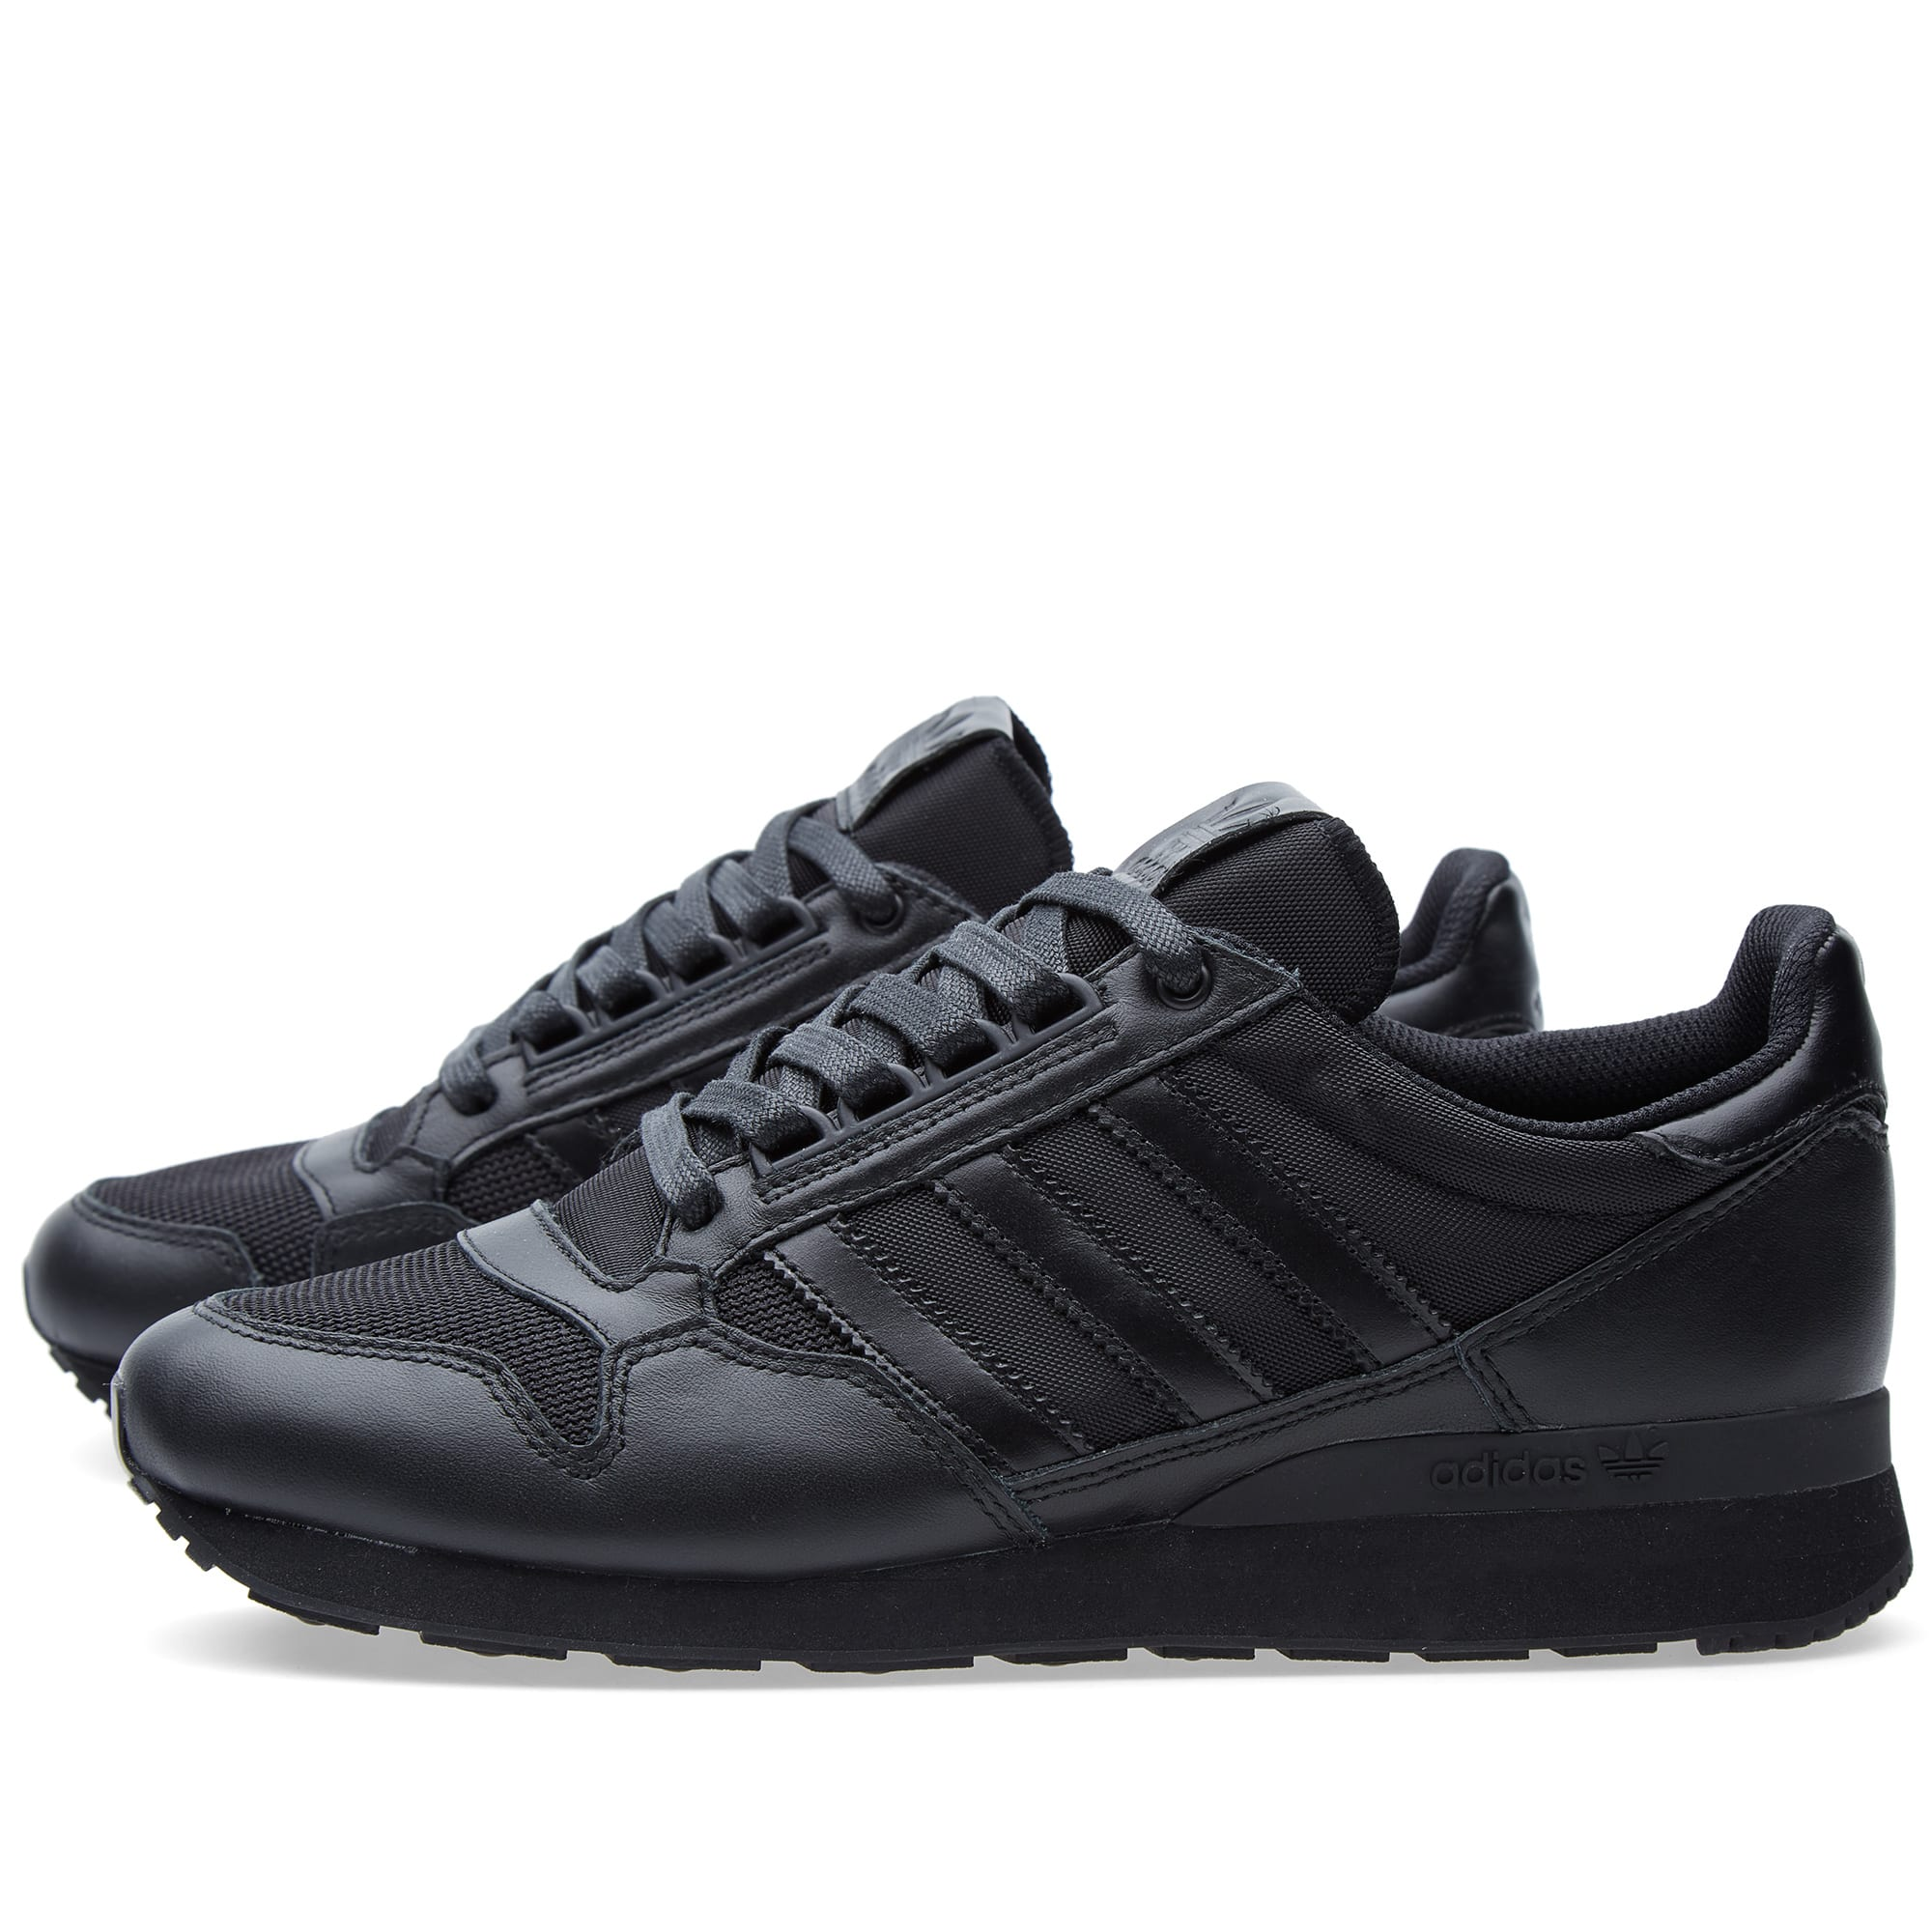 adidas zx 500 og black. Black Bedroom Furniture Sets. Home Design Ideas